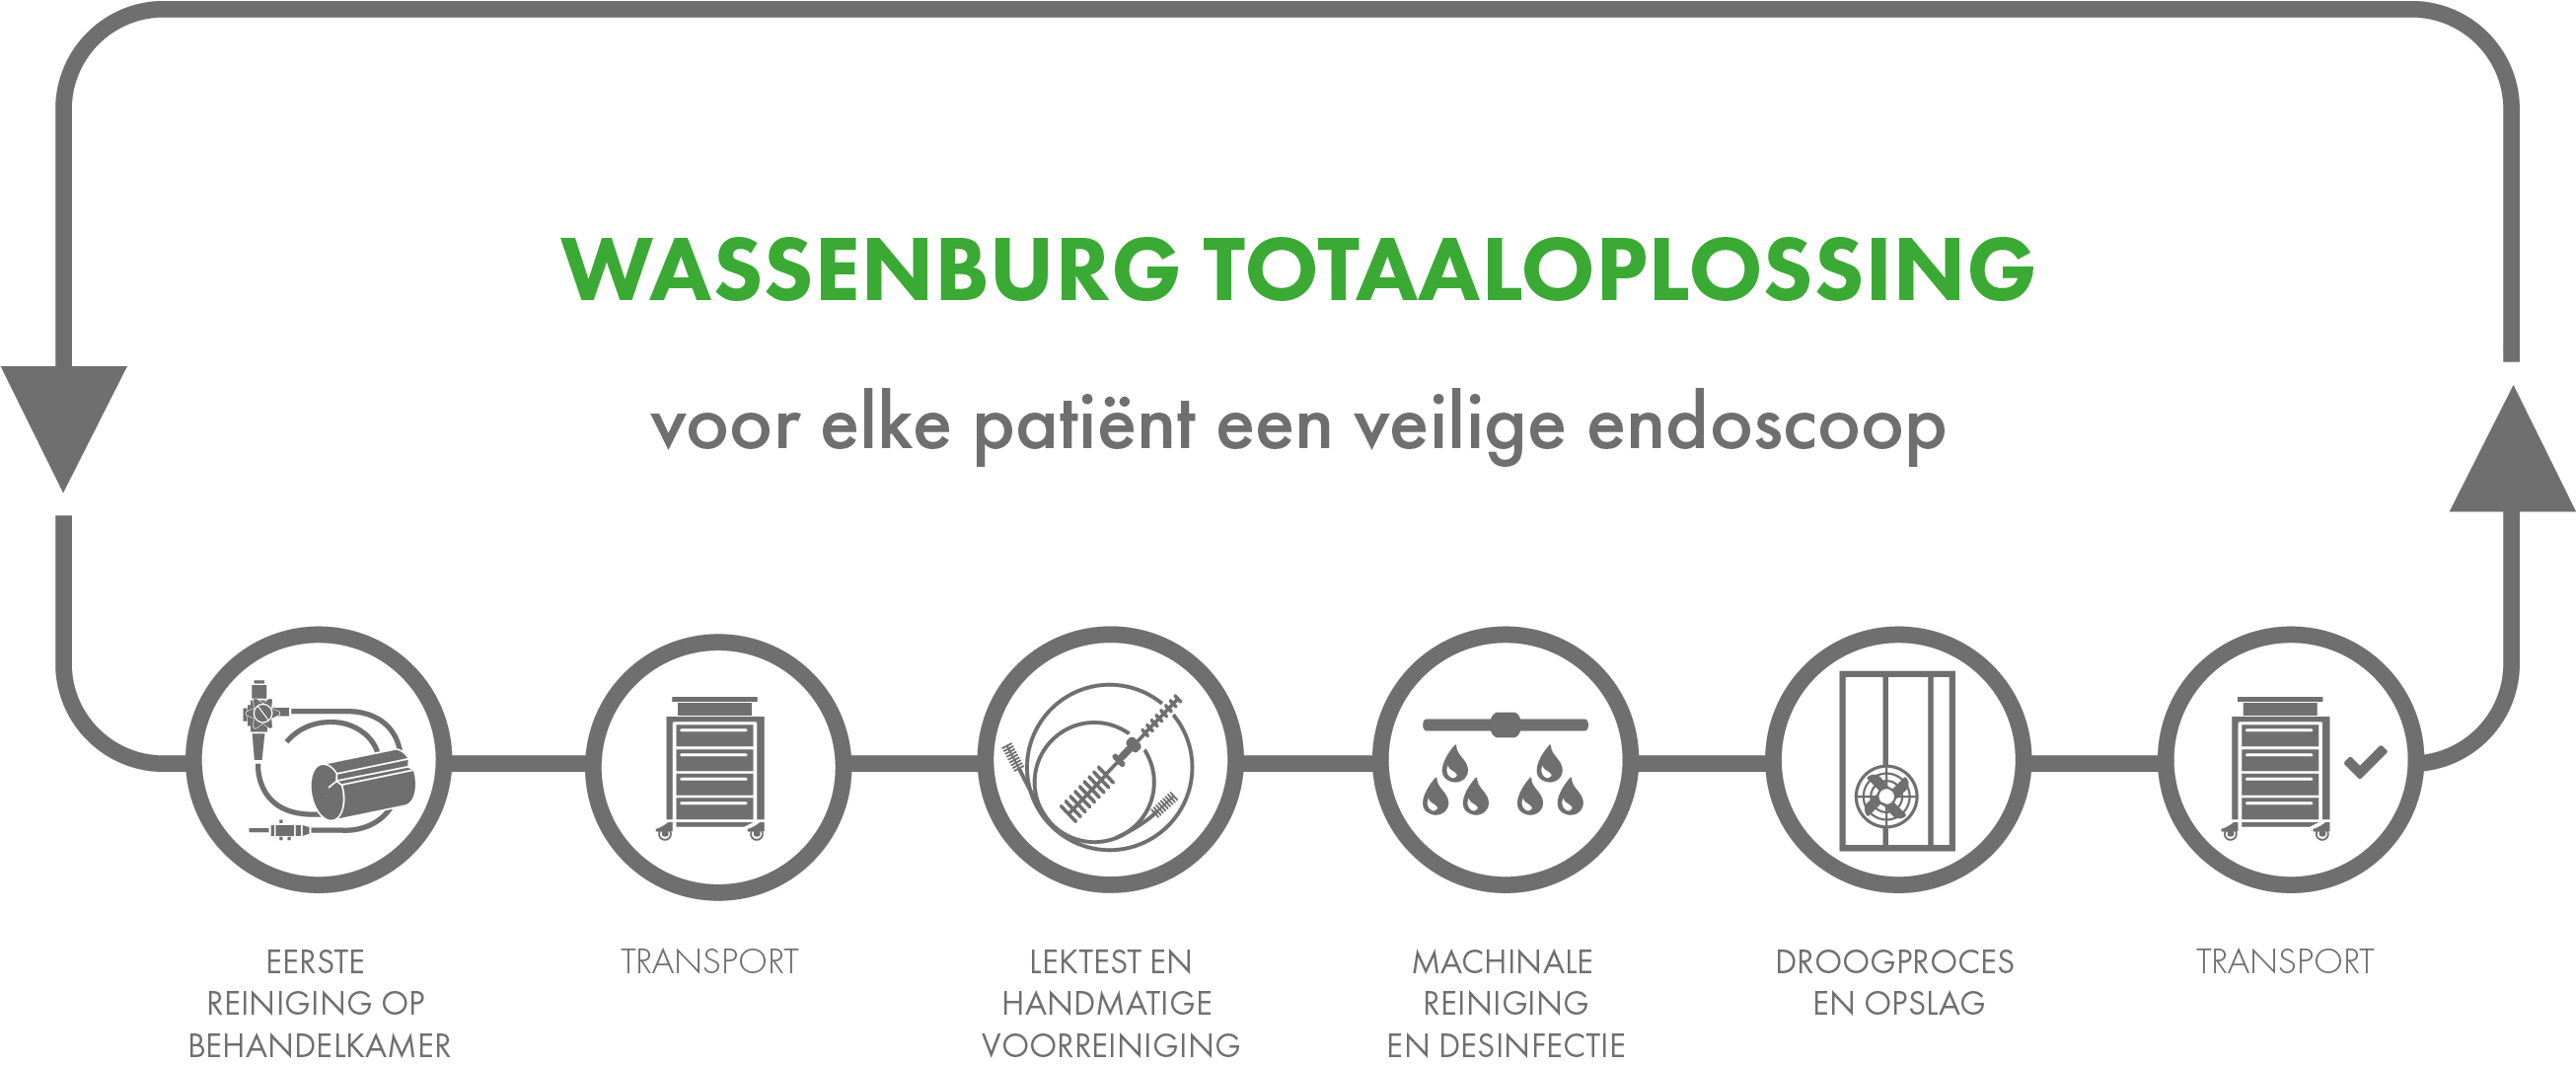 //www.wassenburgmedical.com/nl/wp-content/uploads/sites/3/2018/07/Wassenburg-Total-Solution-NL.png